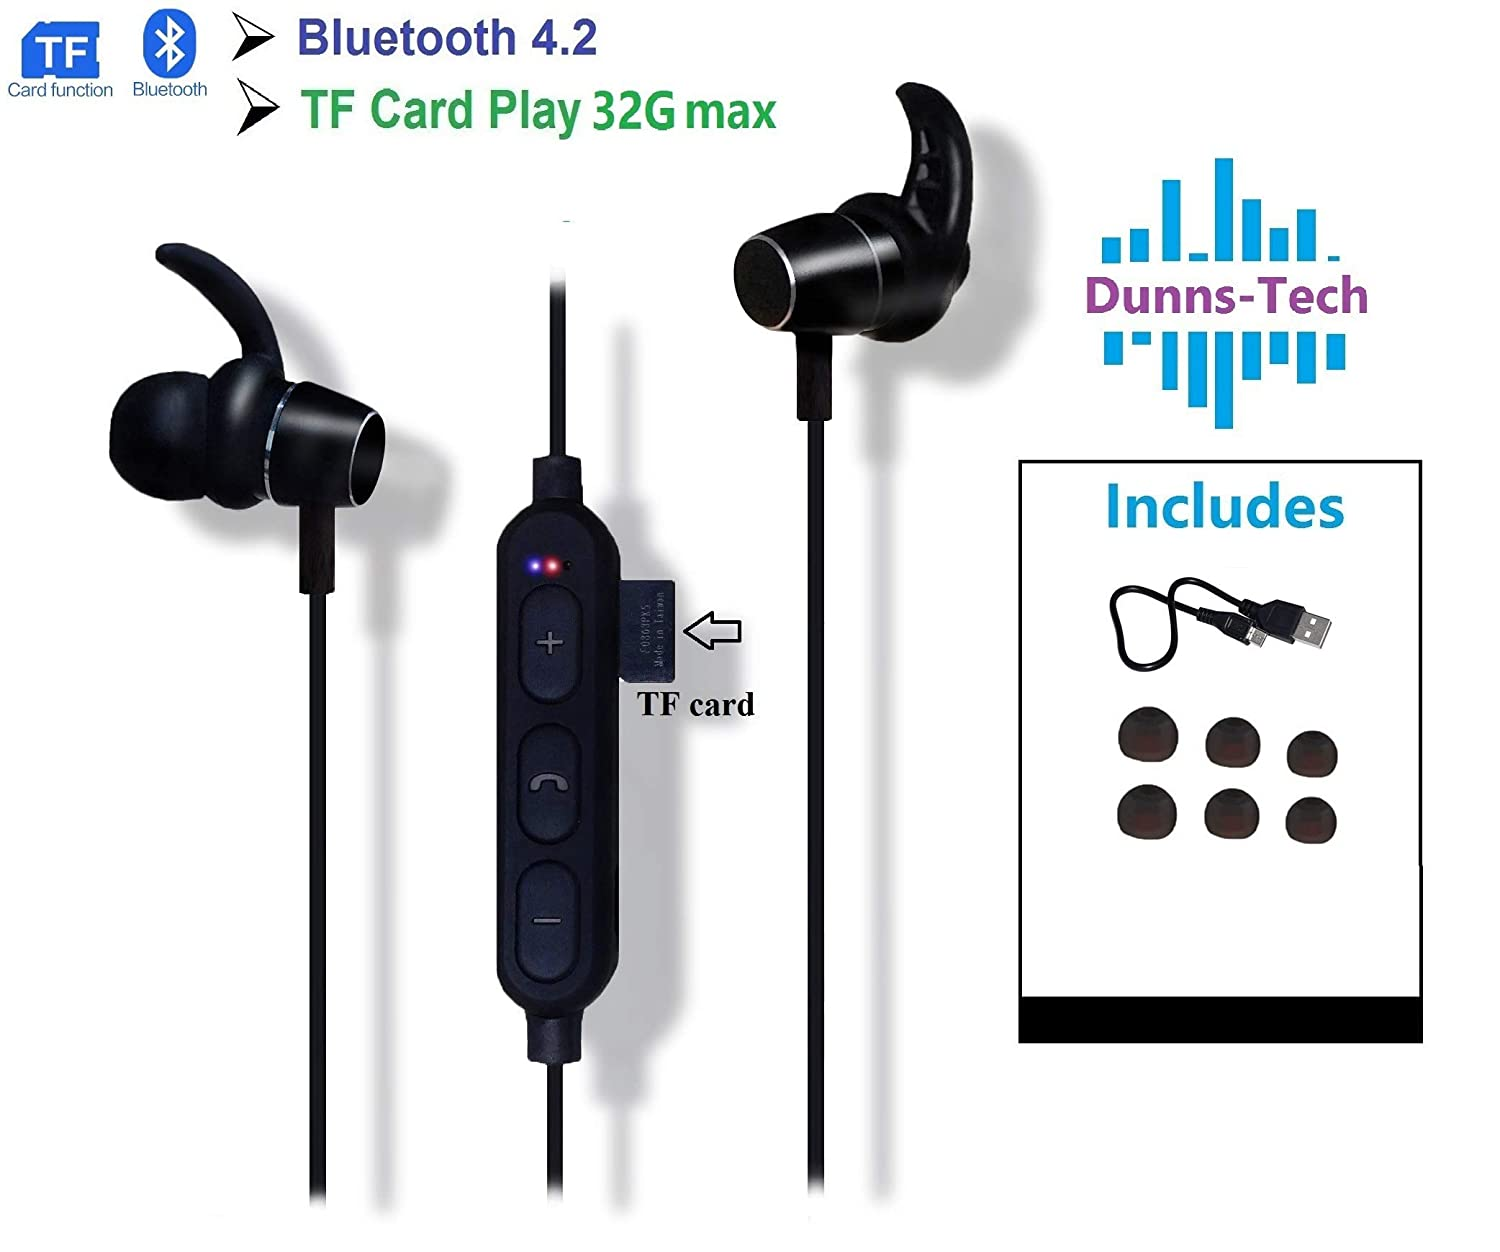 Wireless Bluetooth Sports Fitness Headphones V4.2, TF Card (Micro-SD) Slot for Playing Songs | Suitable for Music or Phone Calls During Activities (Black)